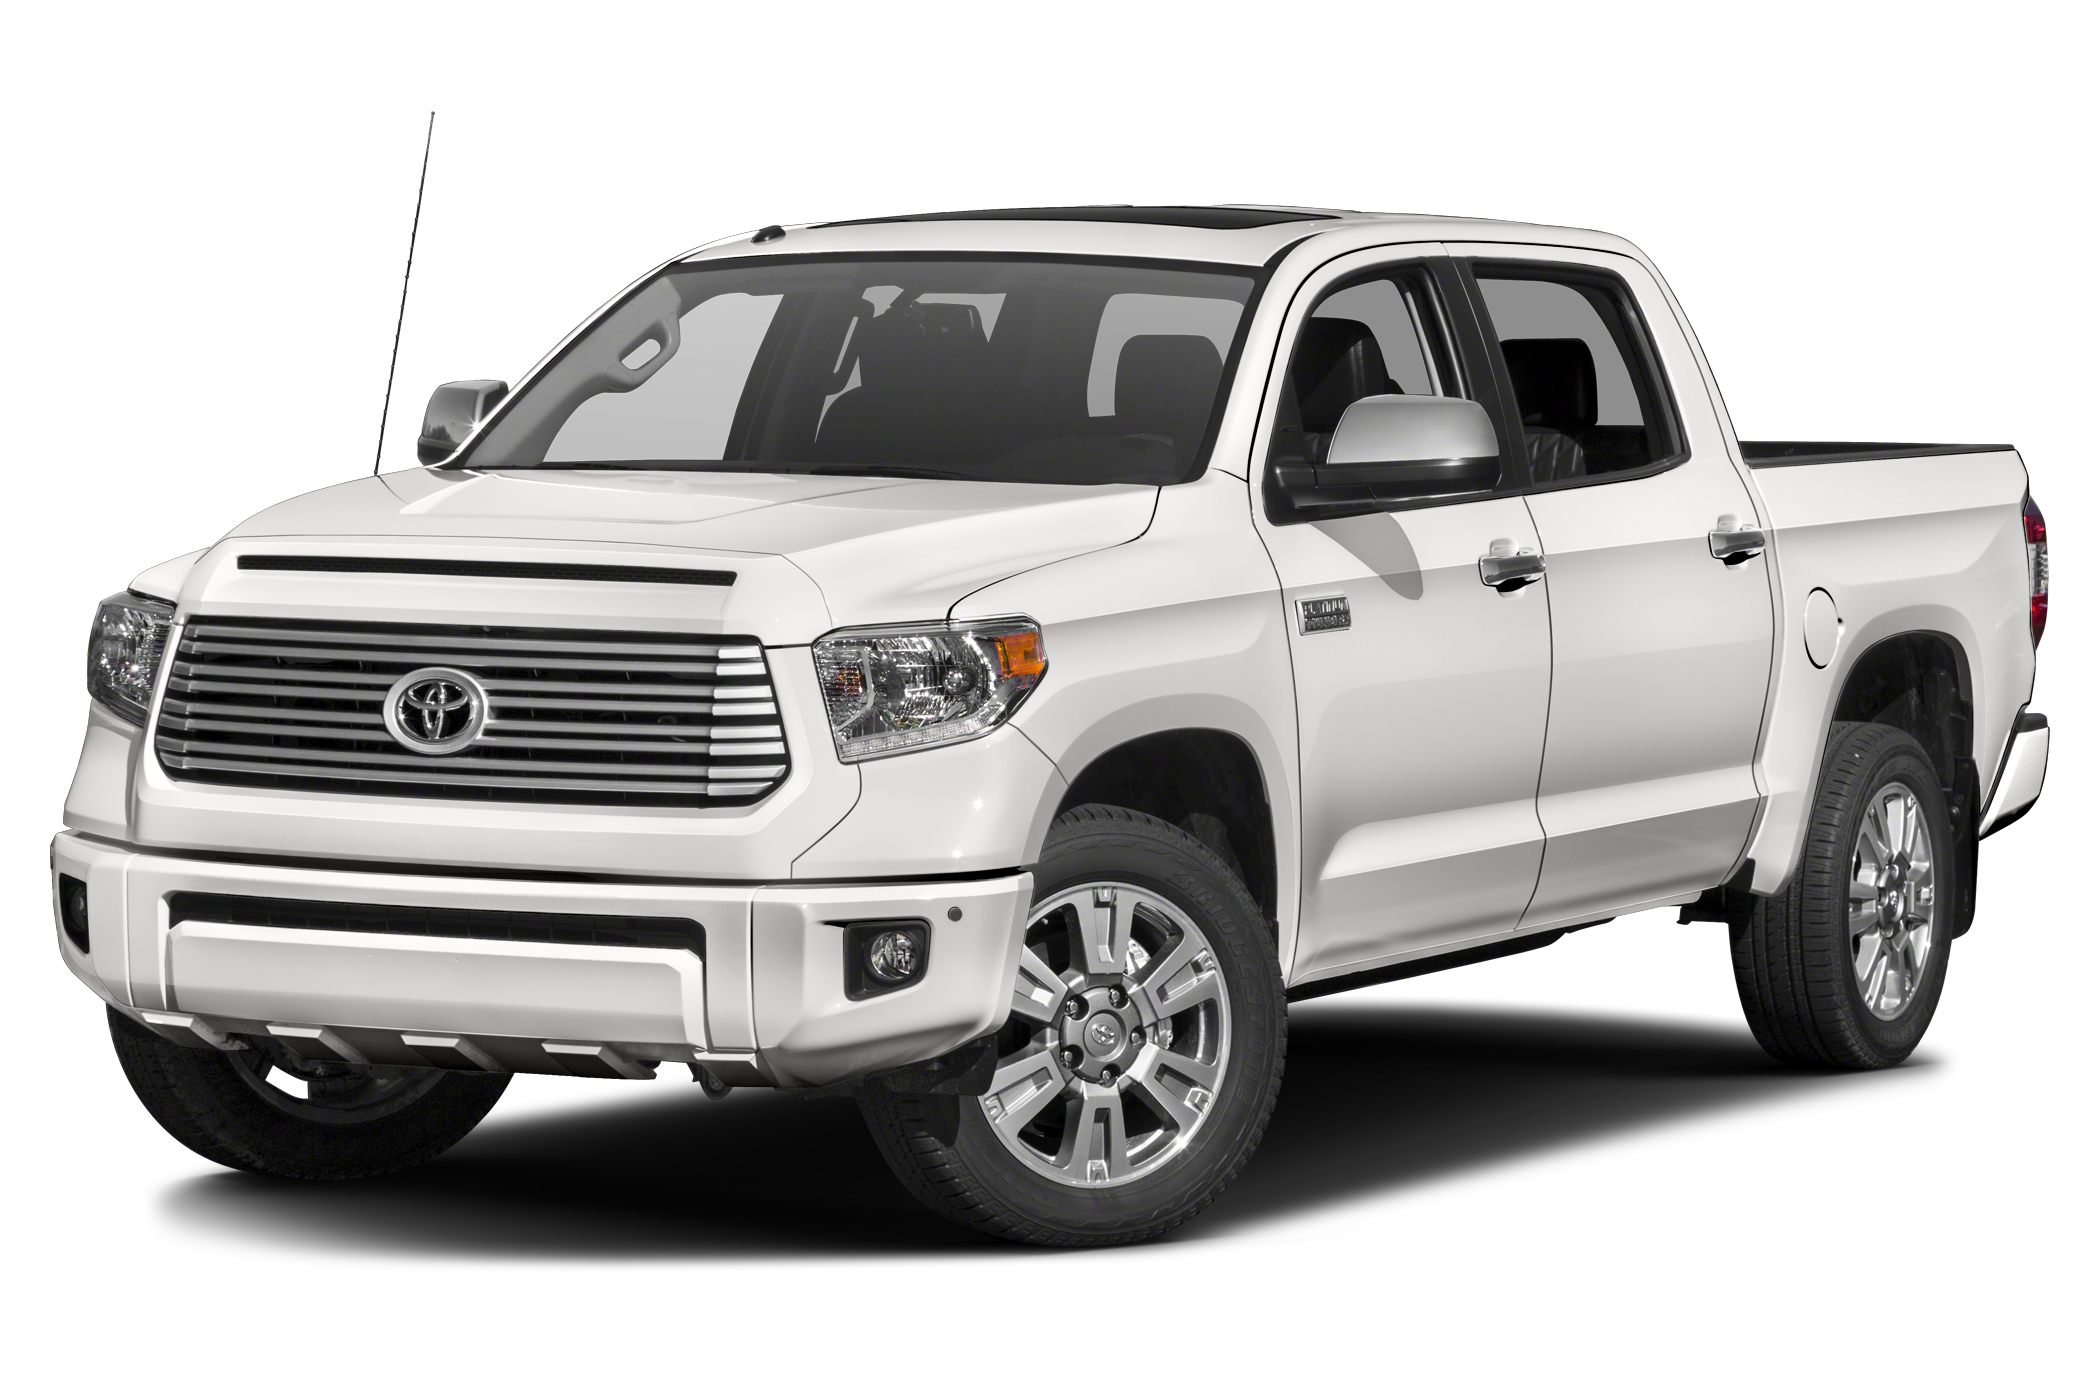 2017 Toyota Tundra Platinum Westboro Toyota is proud to present HASSLE FREE BUYING EXPERIENCE with